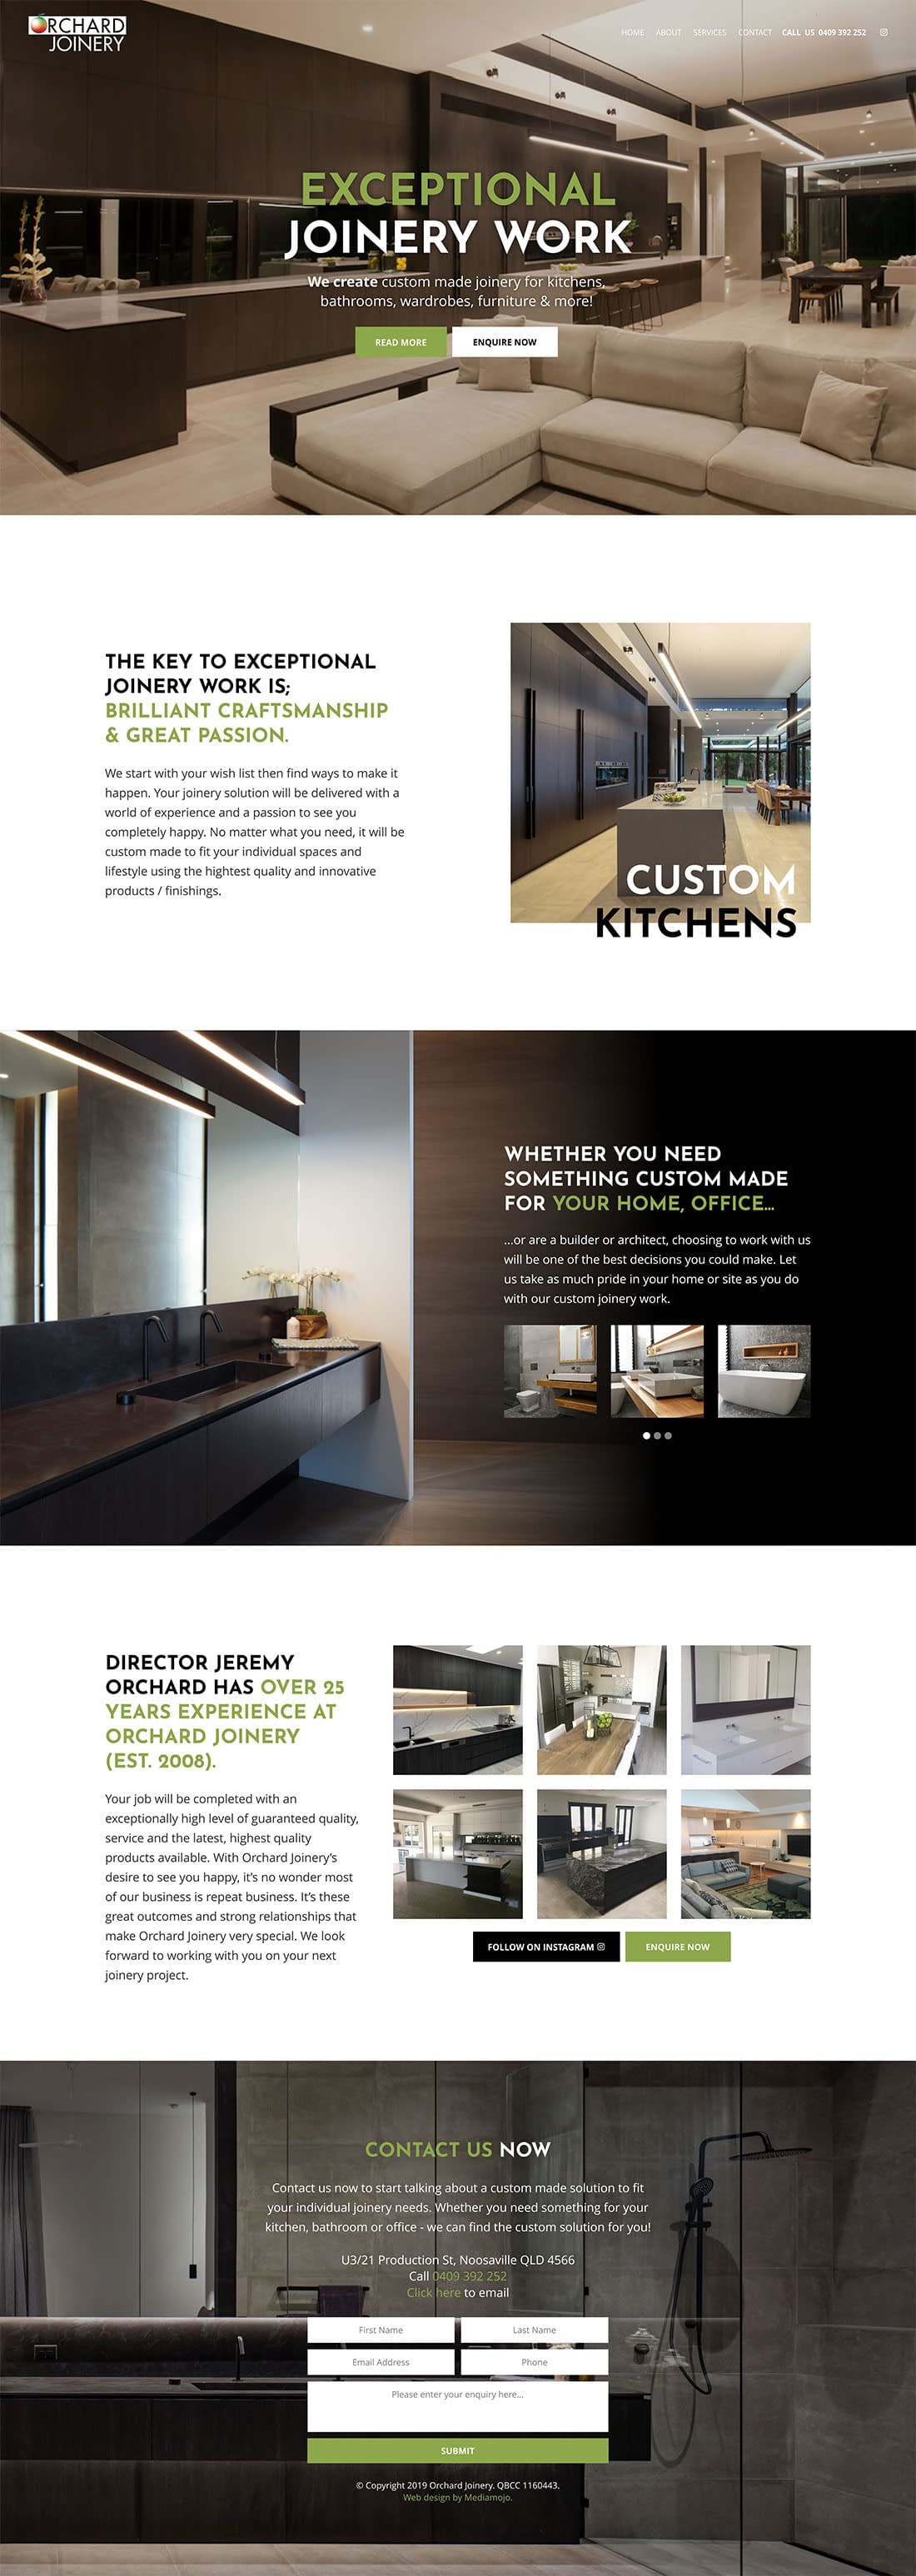 Orchard Joinery website design